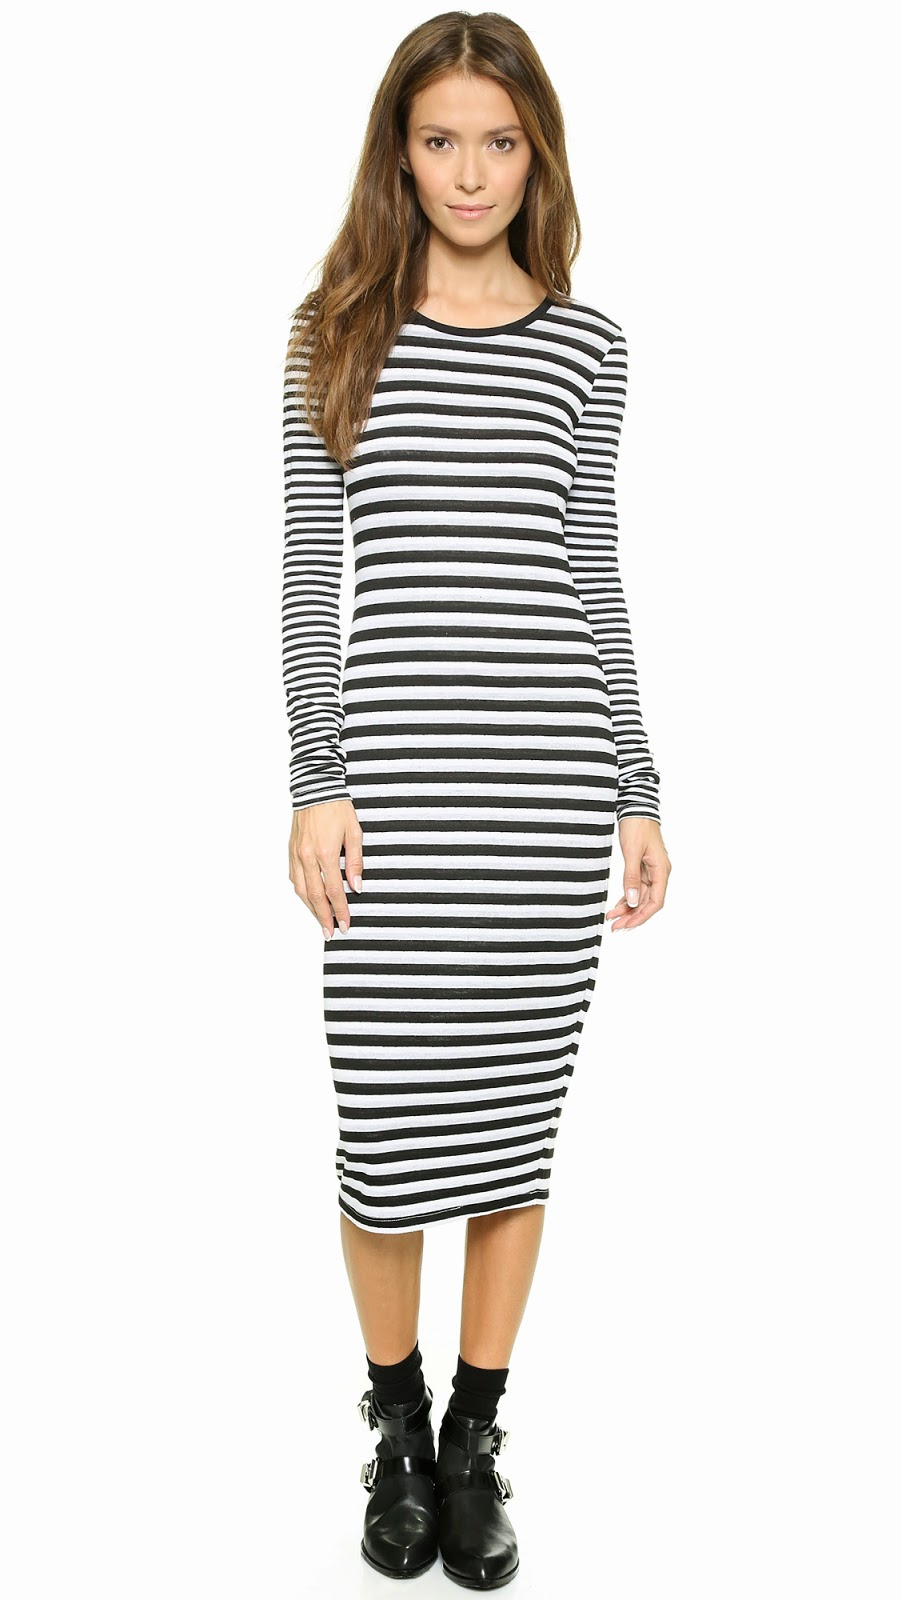 Modest black and white stripe dress with sleeves | Shop Mode-sty #nolayering tznius tzniut jewish orthodox muslim islamic pentecostal mormon lds evangelical christian apostolic mission clothes Jerusalem trip hijab fashion modest muslimah hijabista